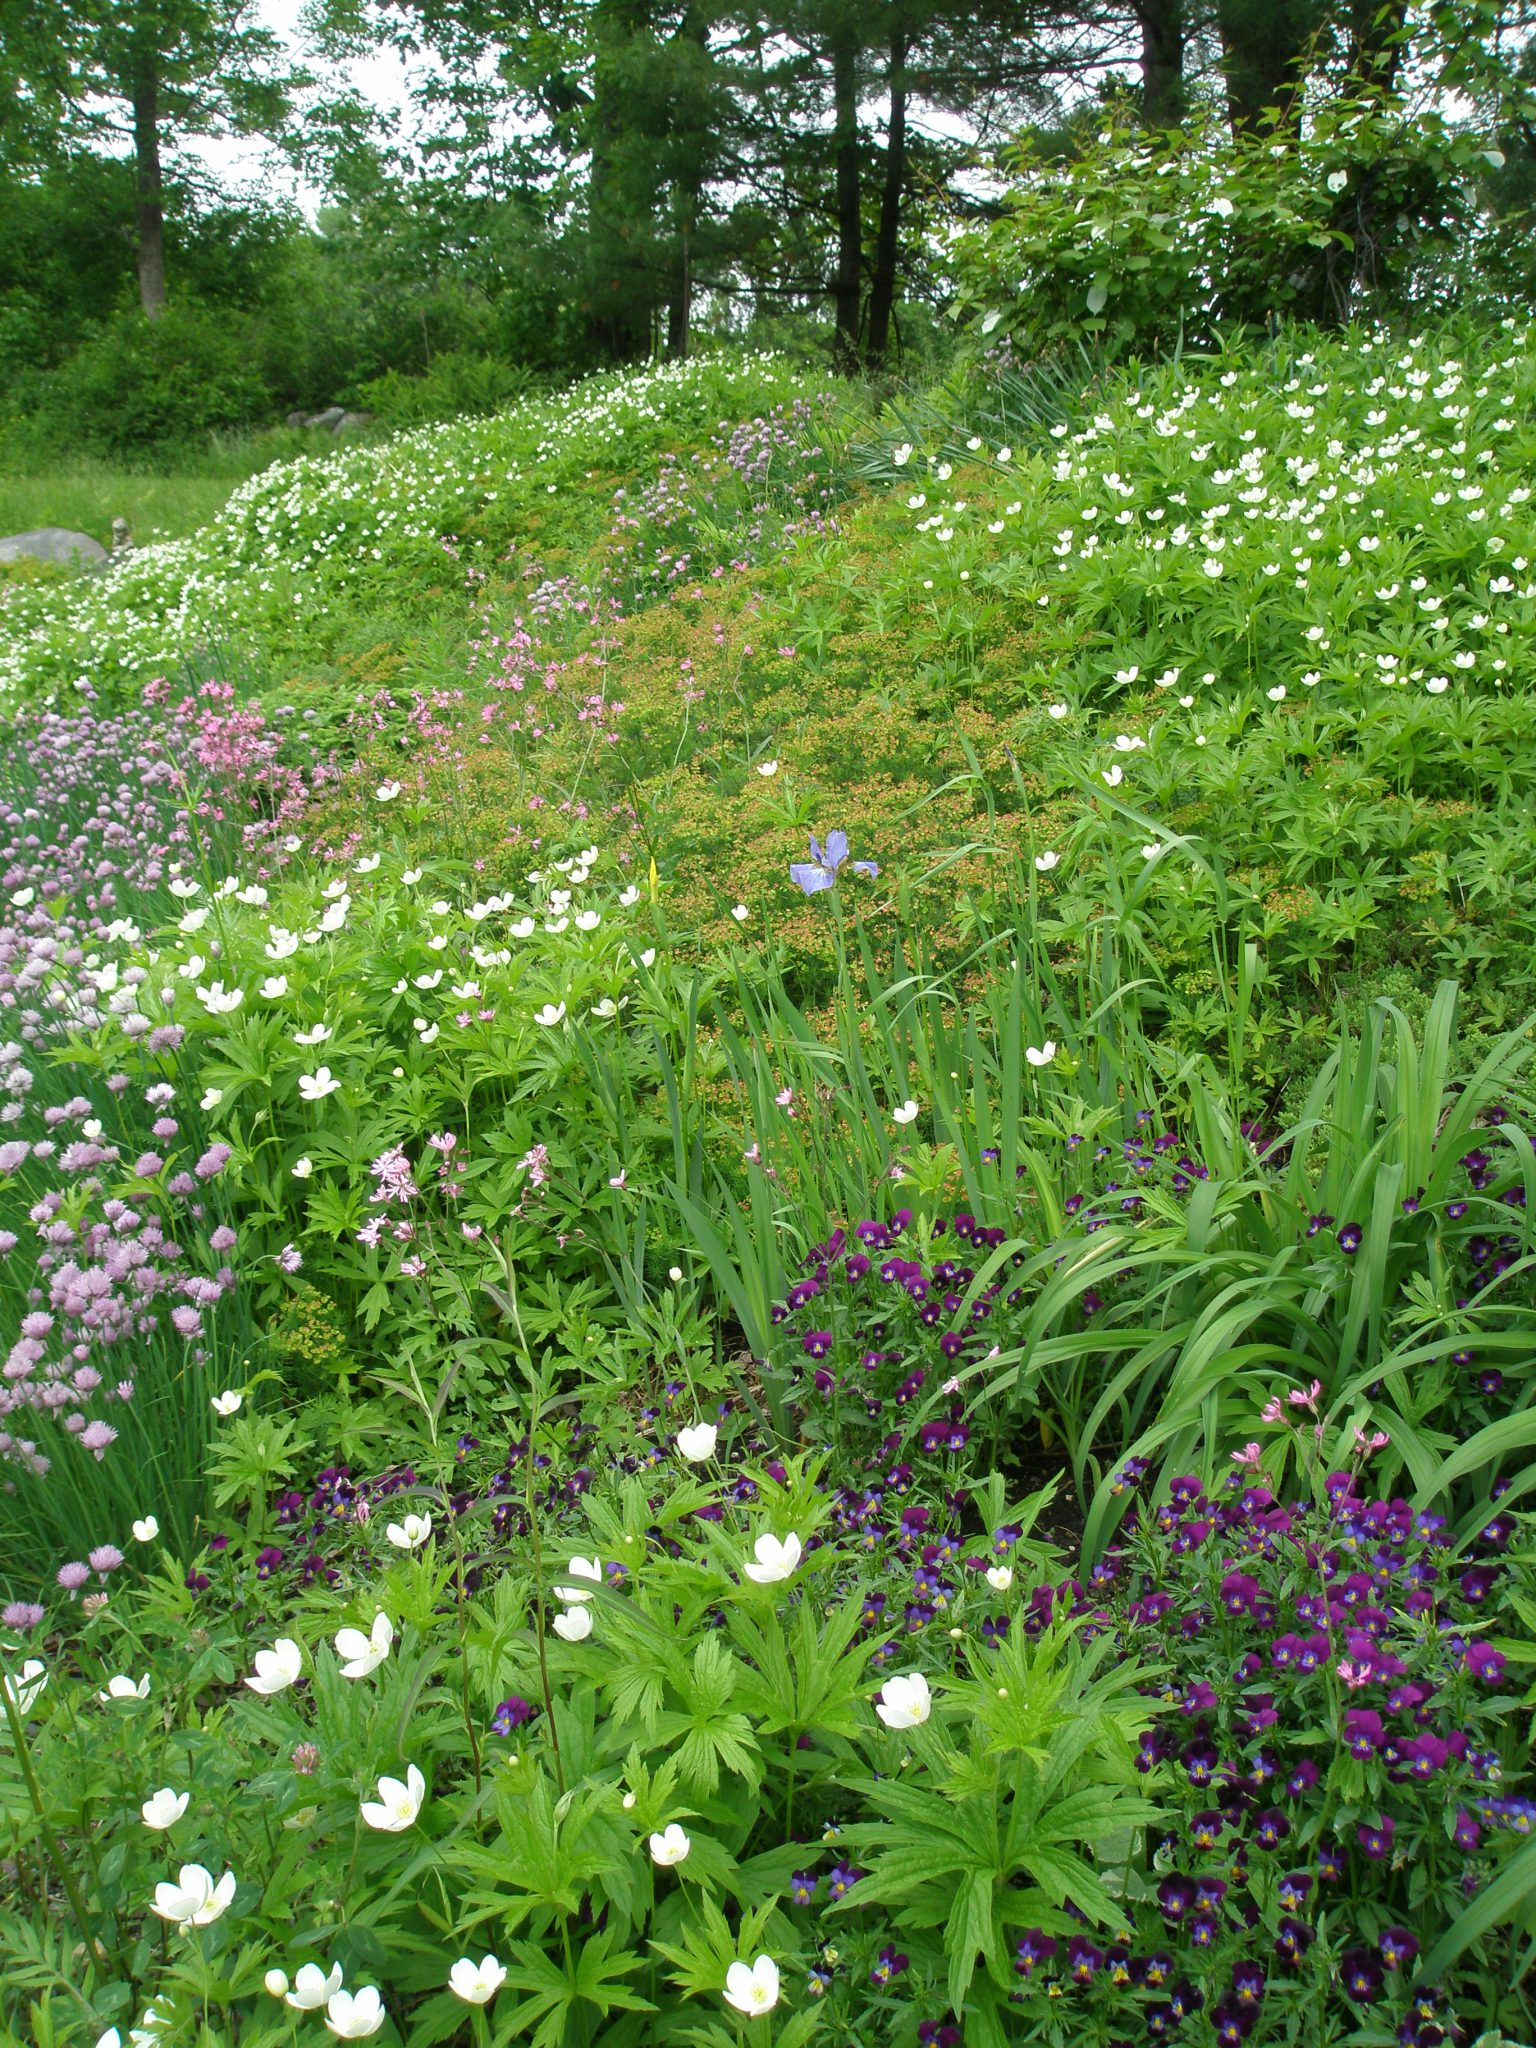 In early June, tulips and daffodils have disappeared under waves of Canadian Anenome, Ragged Robin, Violas and Chives.